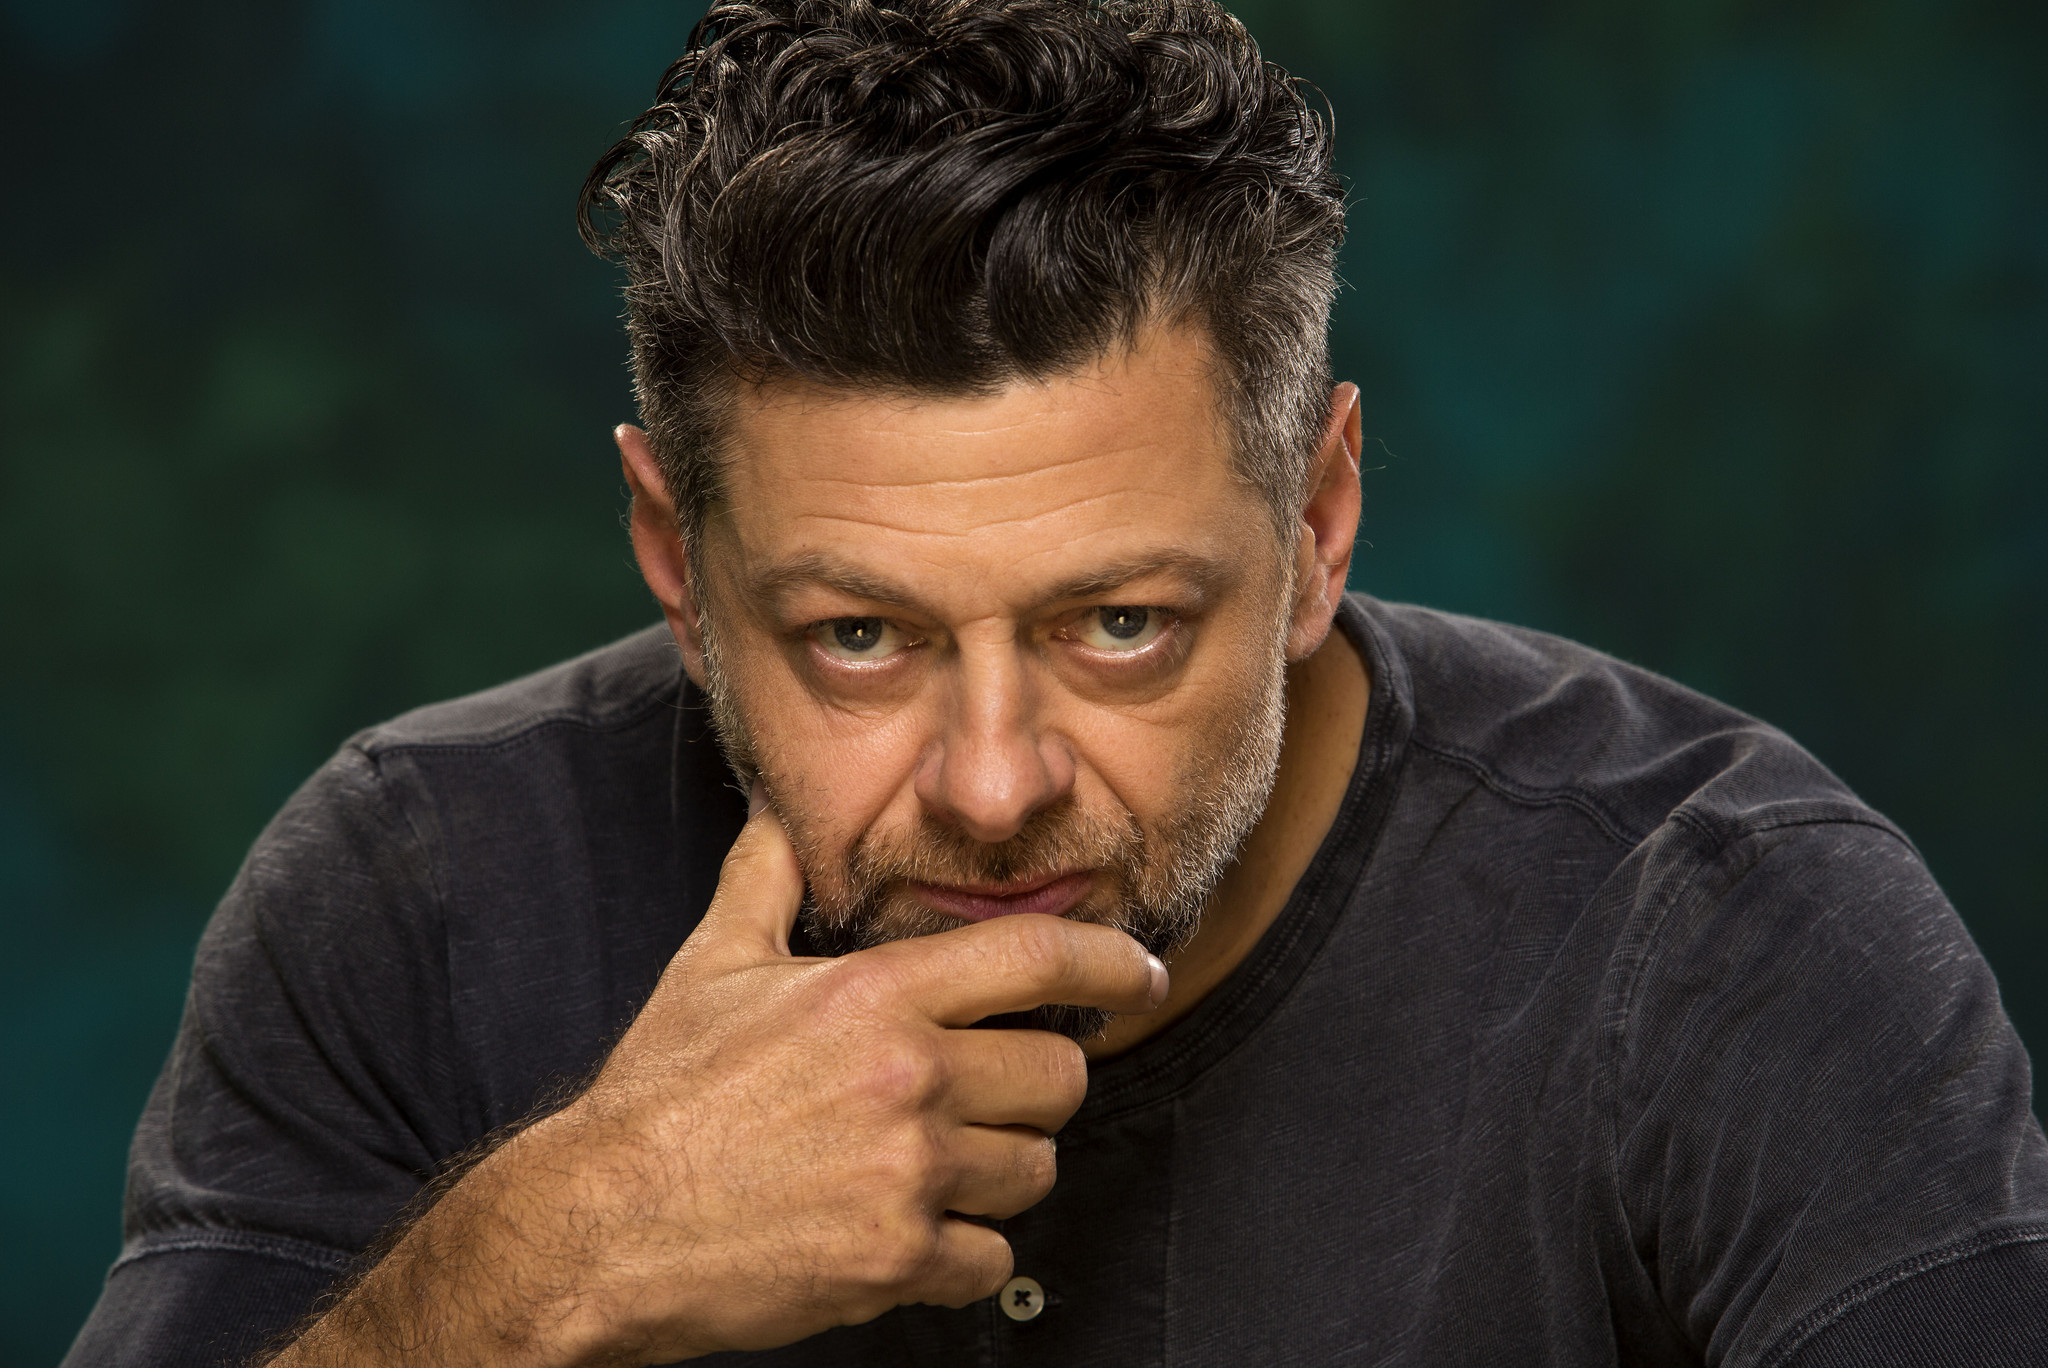 2048x1368 - Andy Serkis Wallpapers 6